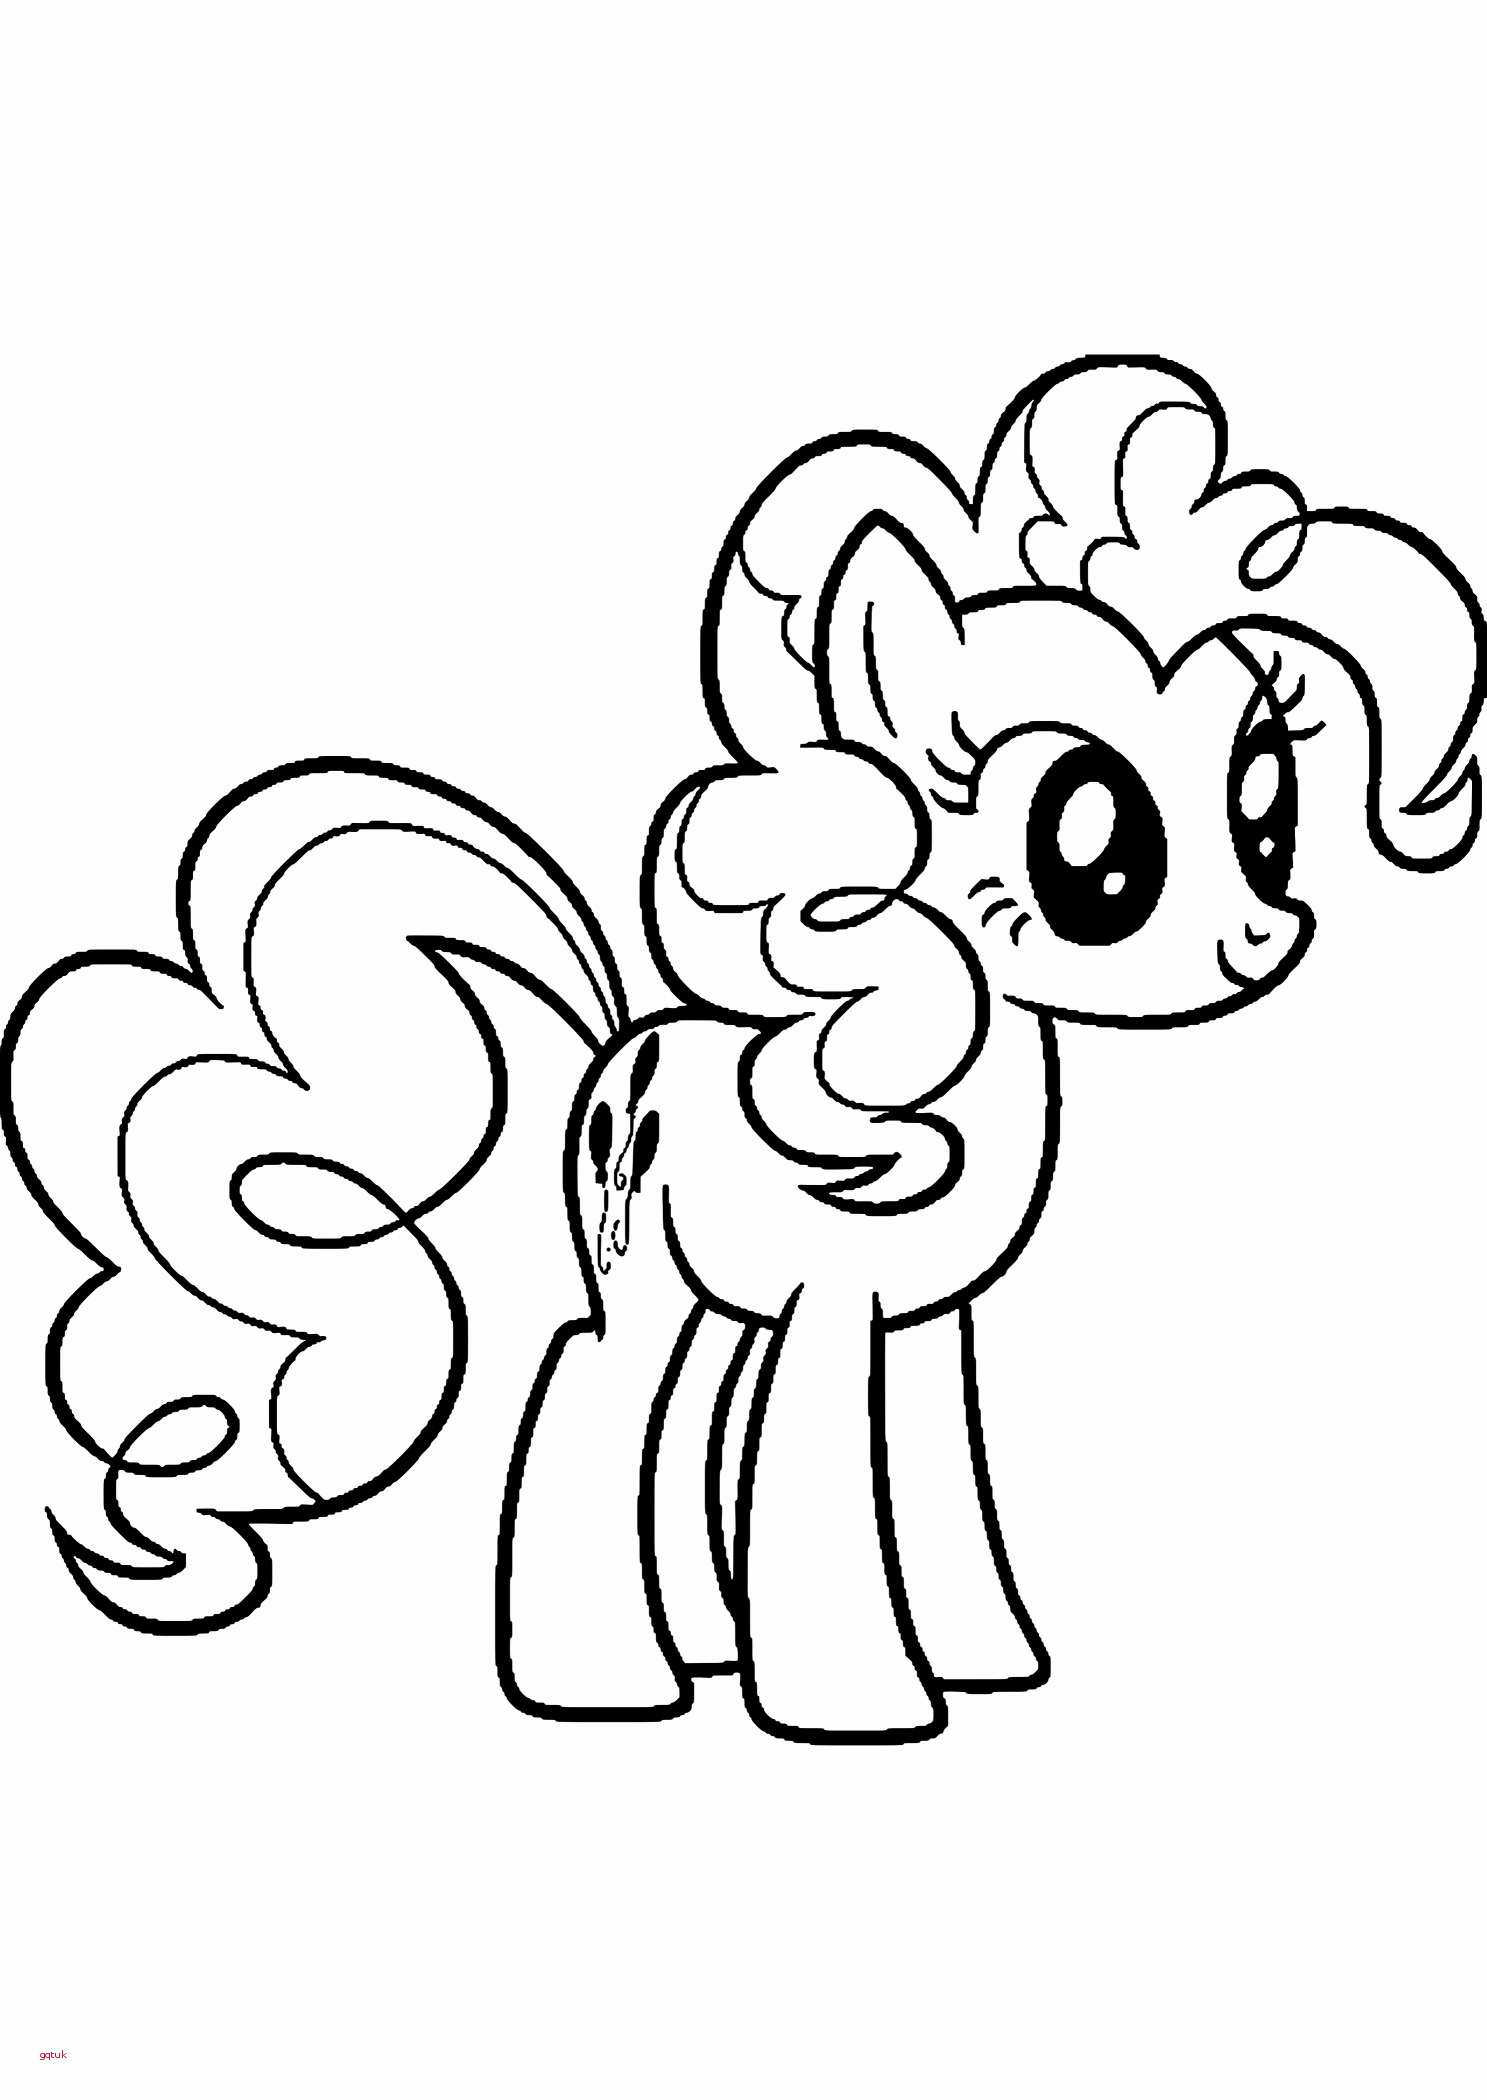 My Little Pony Equestria Girls Ausmalbilder Einzigartig Equestria Girls Pinkie Pie Coloring Pages Free Ausmalbilder My Galerie